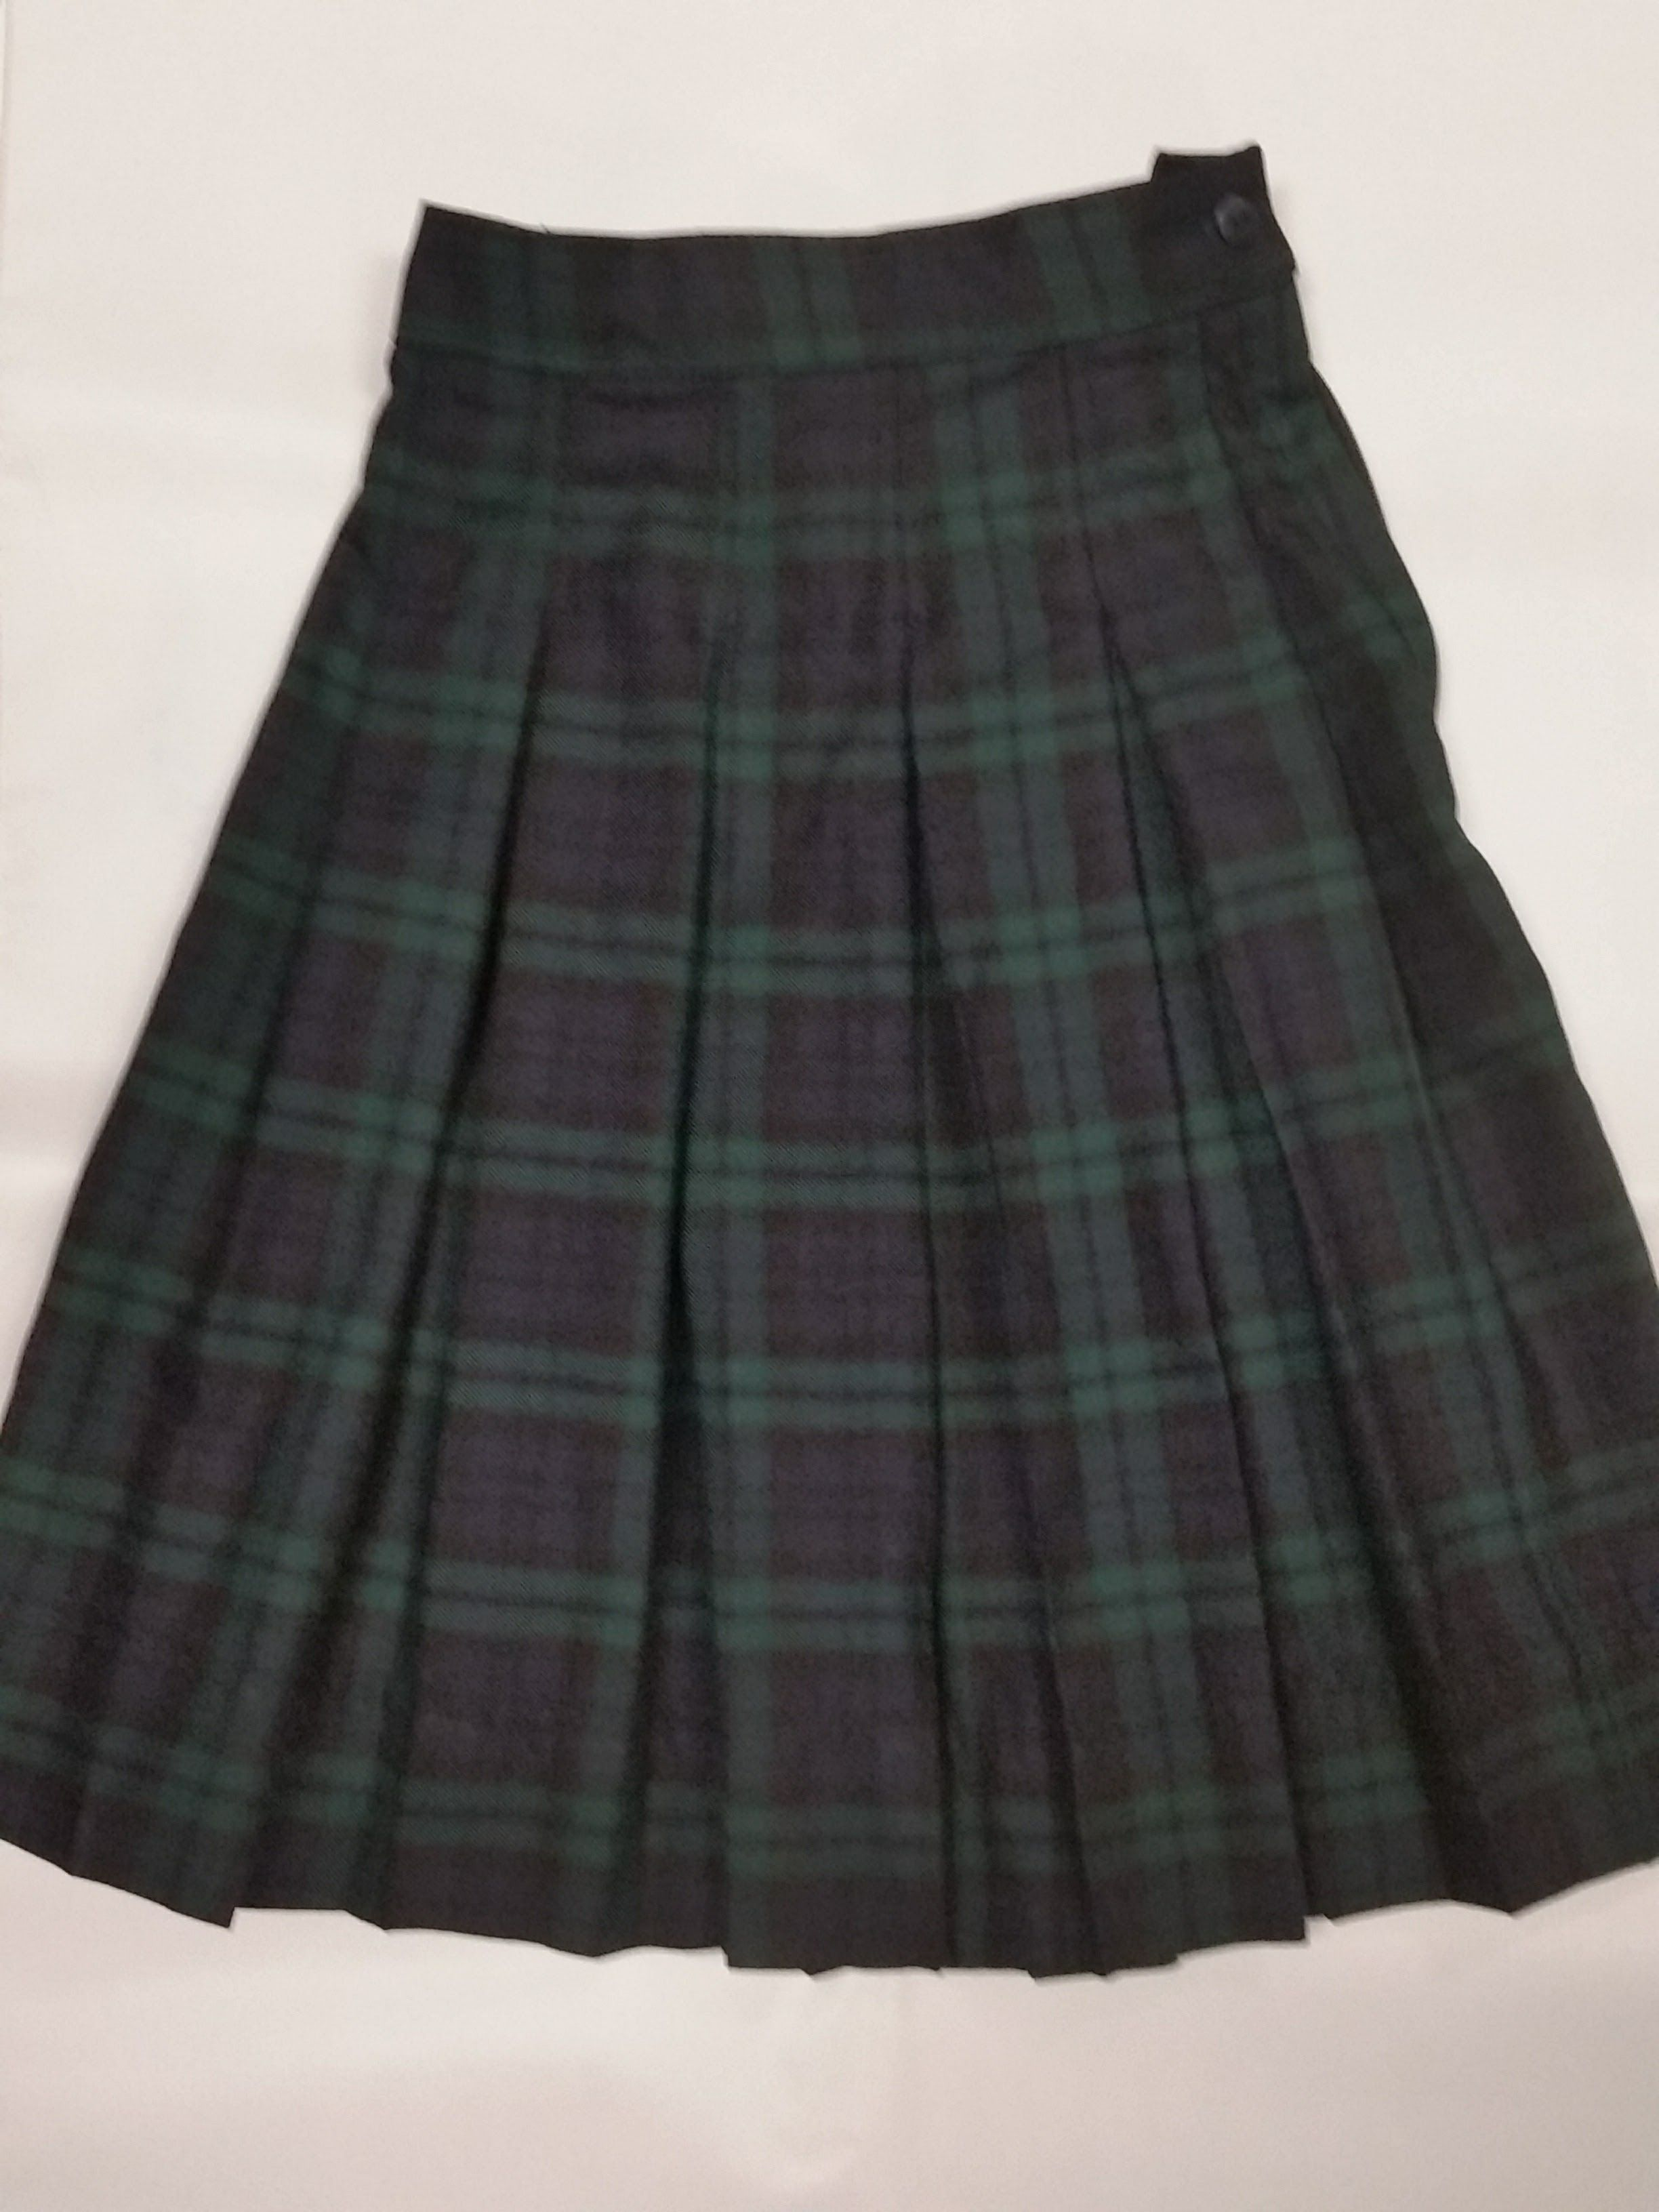 b2c4a41730 Pleated Skirt in Plaid 79. Comfortable poly rayon Black Watch plaid (navy,  evergreen and black). Sewn-down box pleats, zipper/button closure, 3